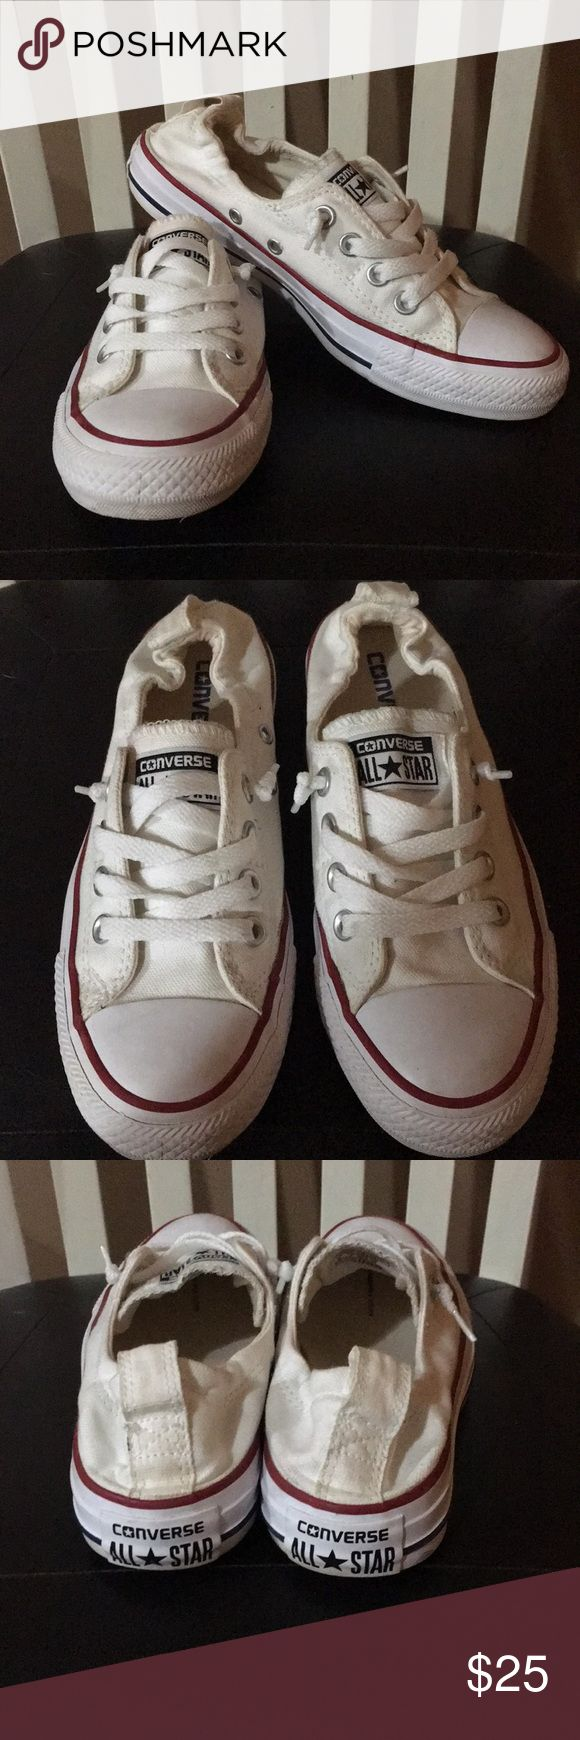 Ladies Converse All Star shoes Ladies Converse All Star slip on tennis shoes. White with red and blue stripes. Have only worn a couple of times. Converse Shoes Sneakers